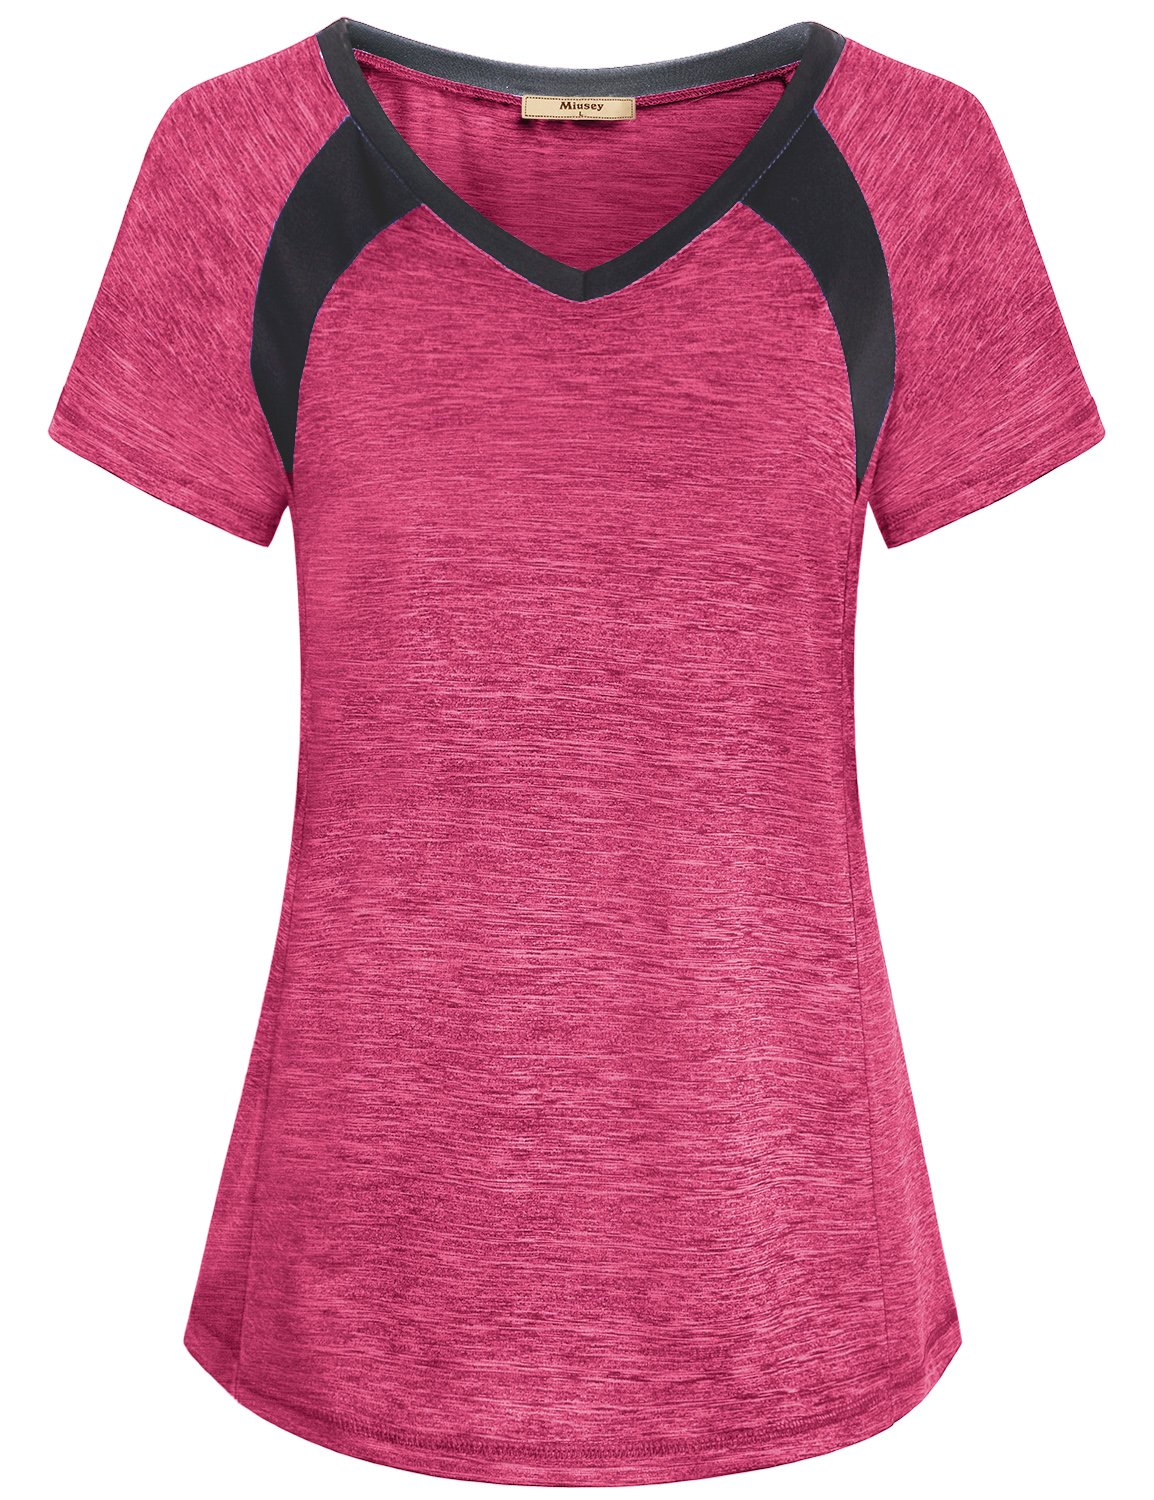 Miusey Workout Clothes for Women, Girls Quick Dry Shirts Short Raglan Sleeve V Neck Yoga Running Tunic Lightweight Top Casual Summer Hipster Fashion Primary Fitness Tees Red M